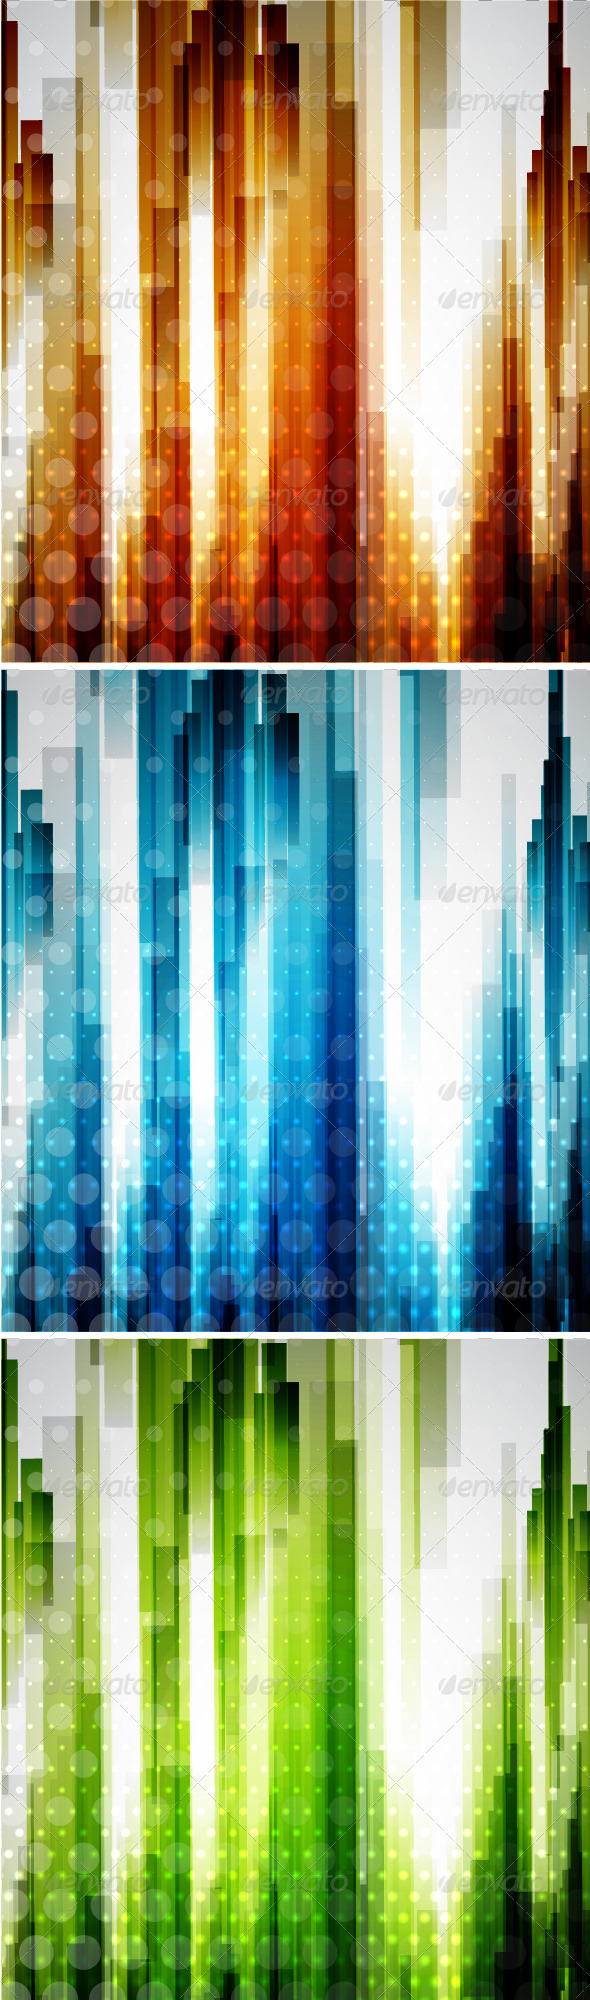 Vector Vertical Lines Backgrounds - Backgrounds Decorative